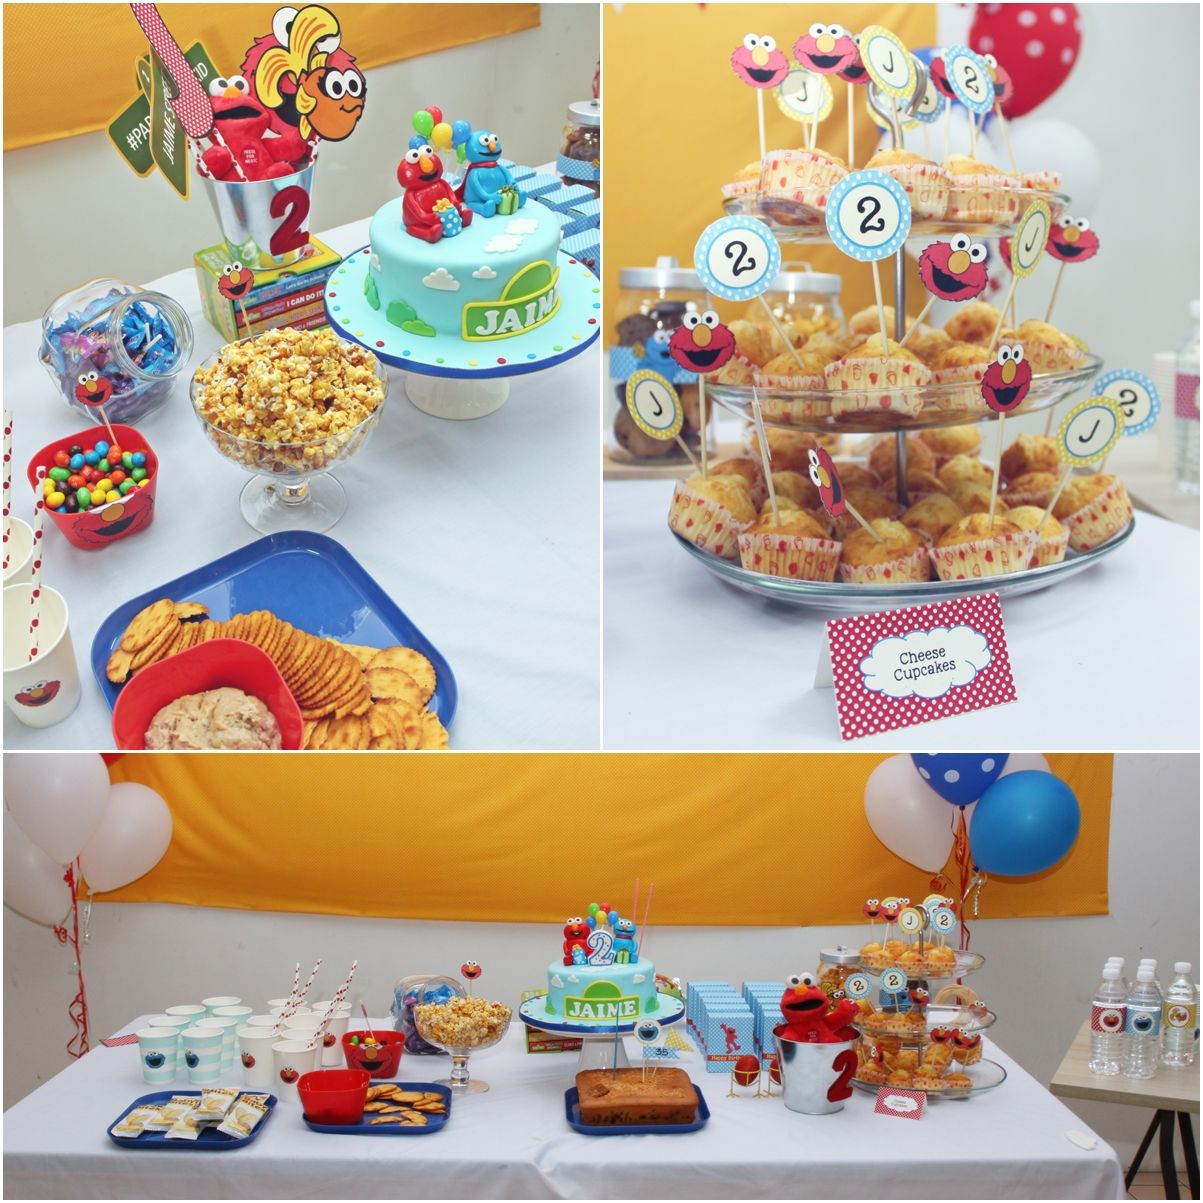 My son 2 years old Elmo theme birthday party. (With images